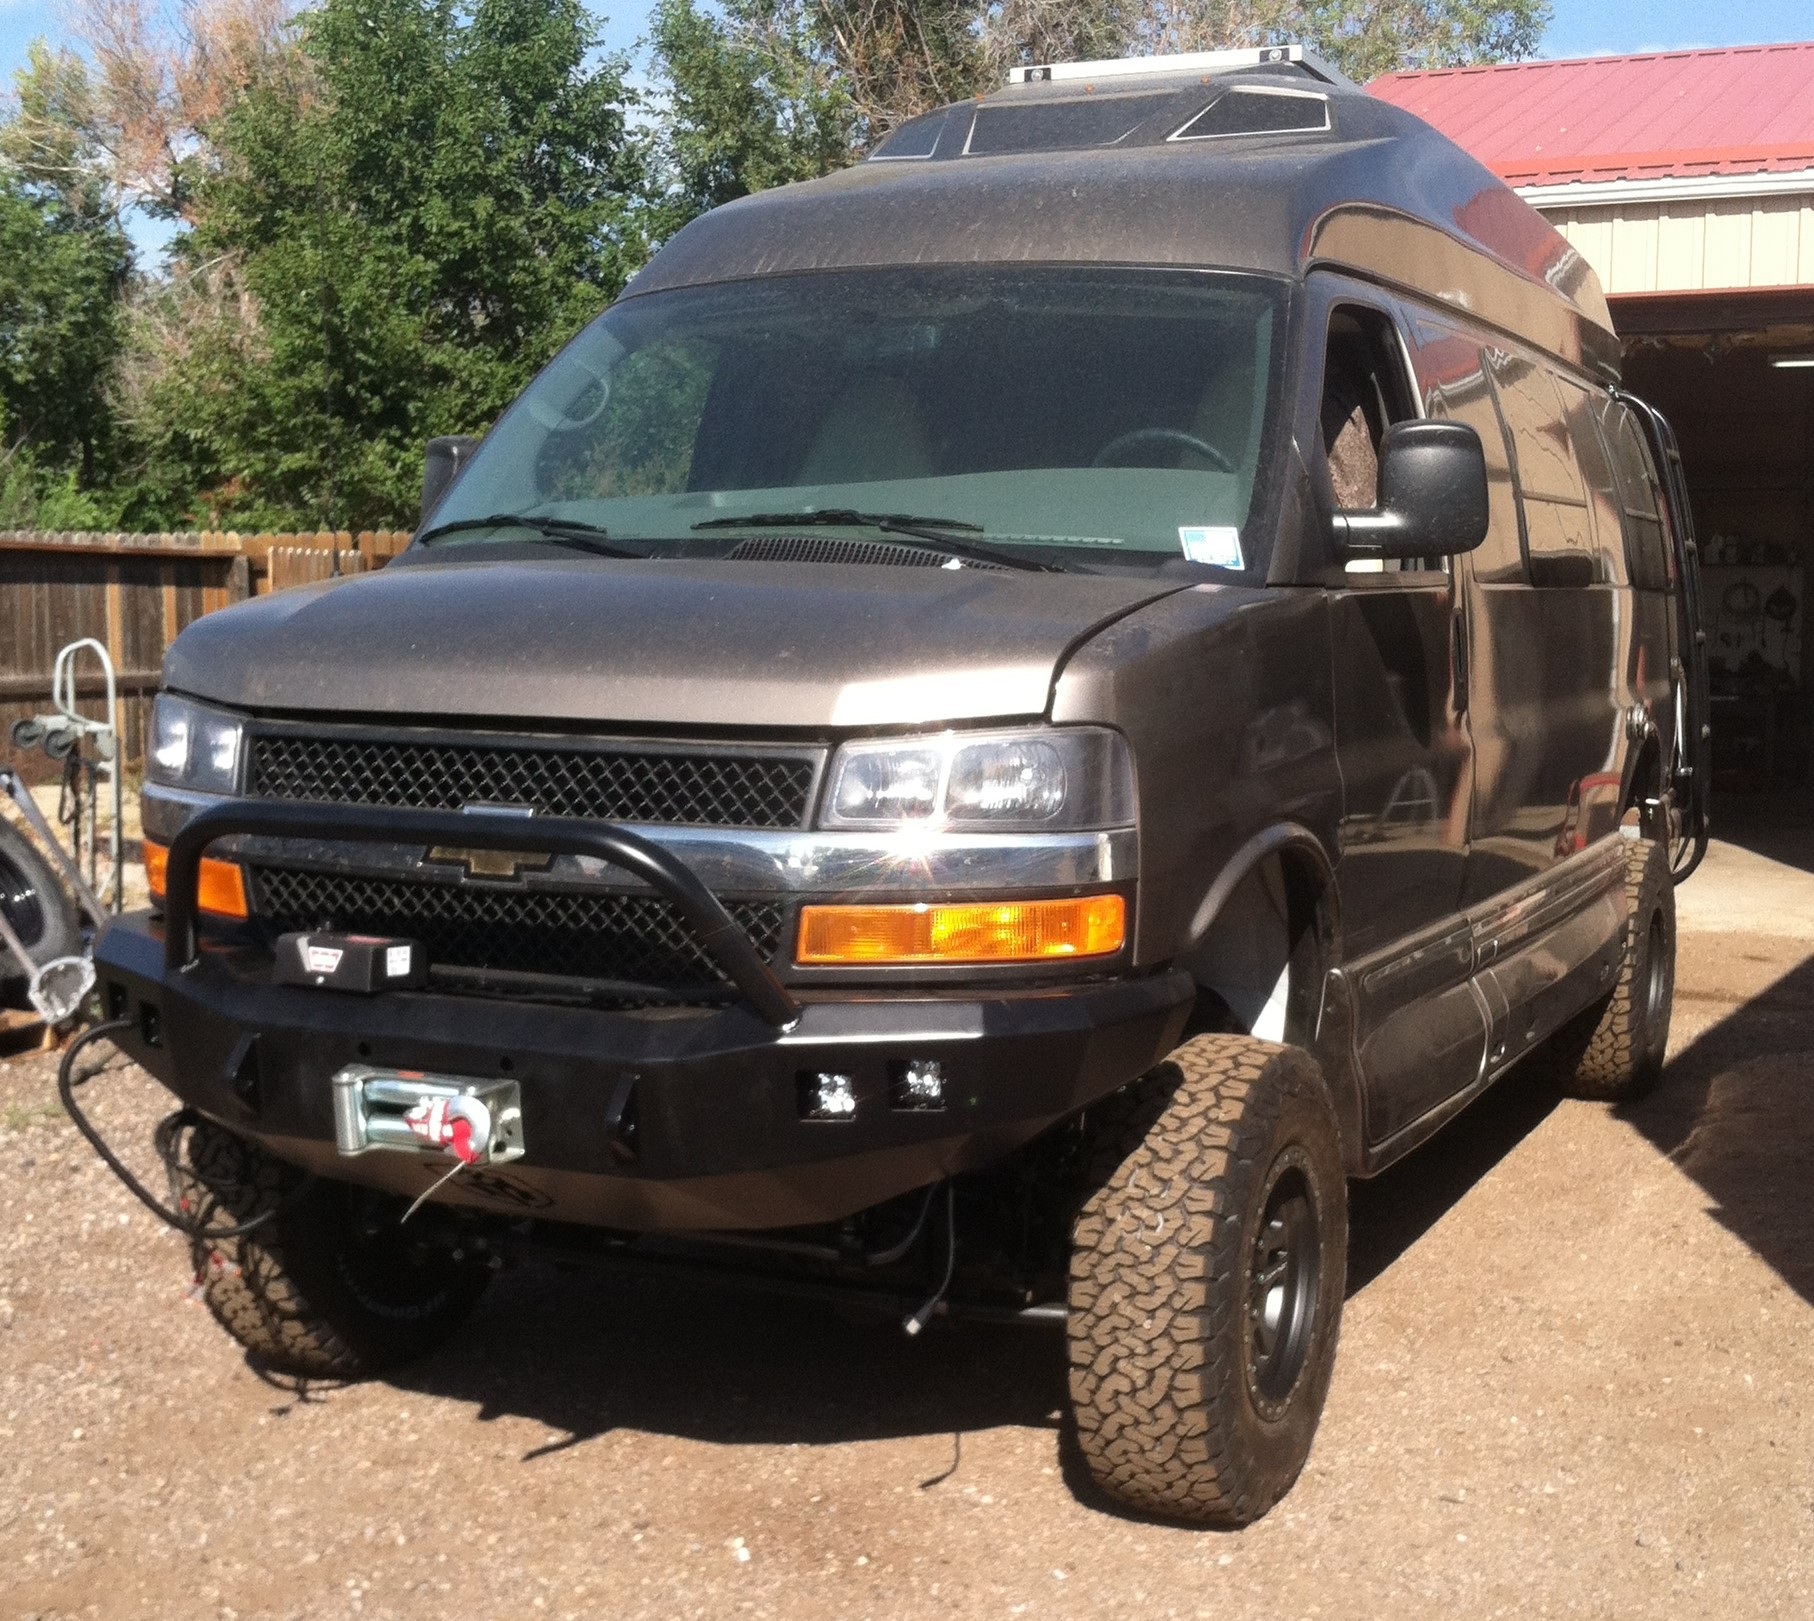 4x4 Chevy Express Roadtrek